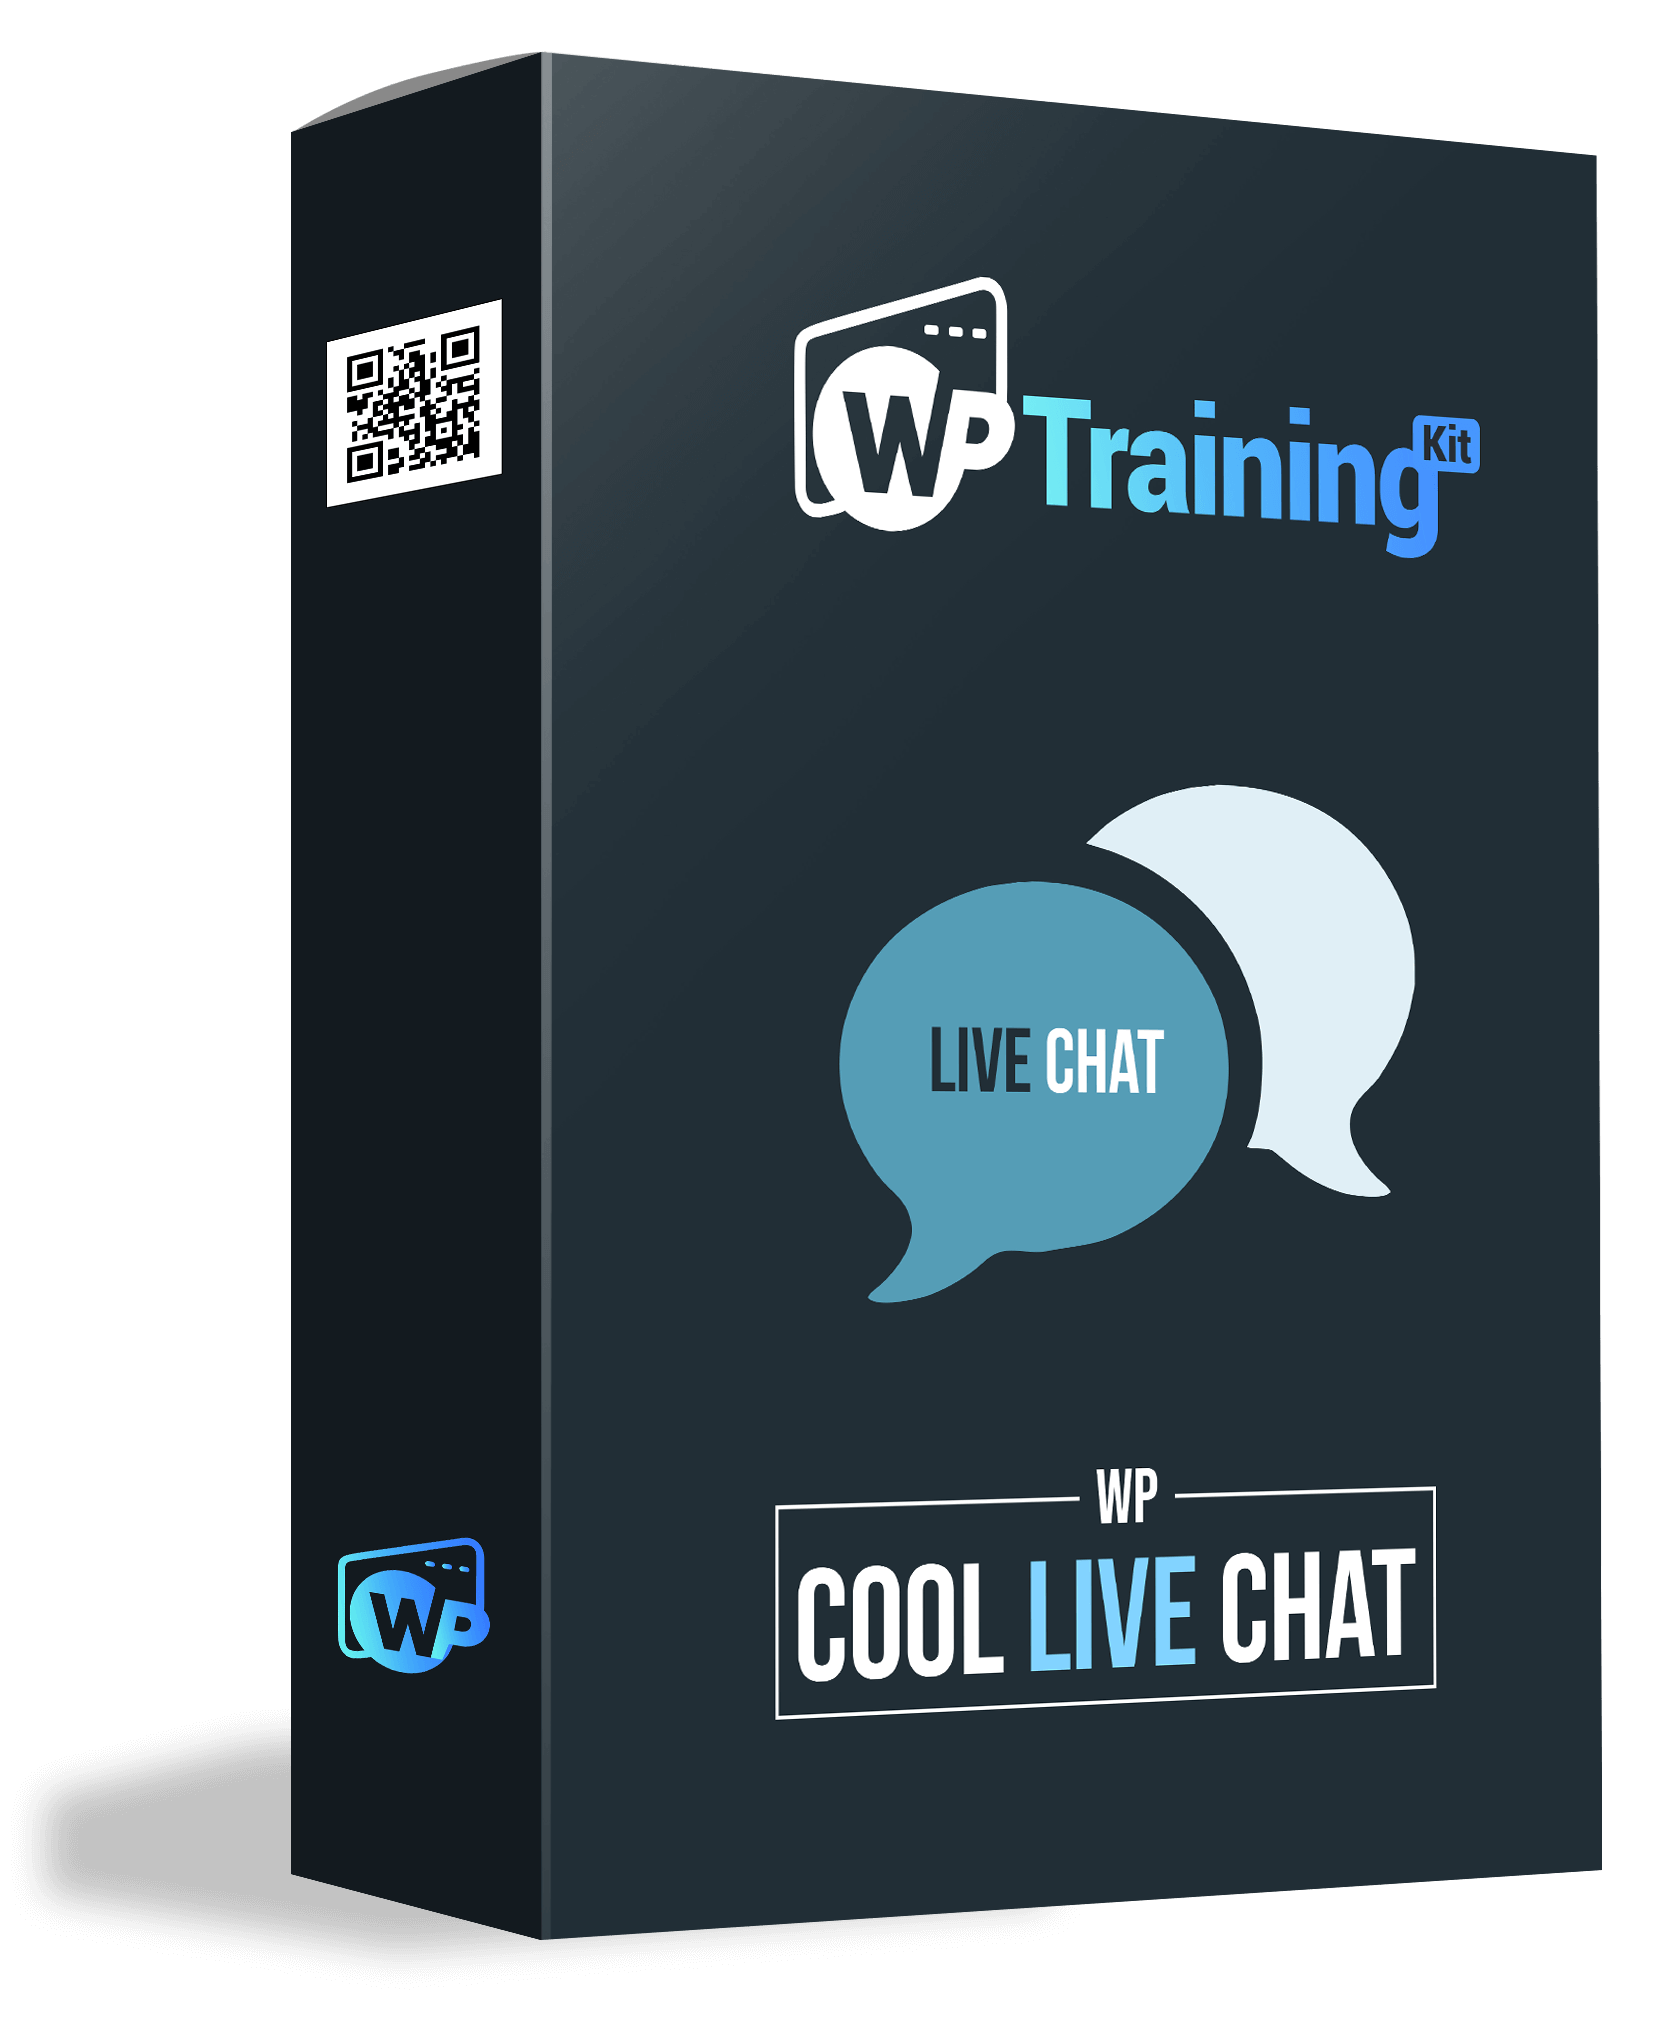 Bonus 1 - WP Cool Live Chat Box Design